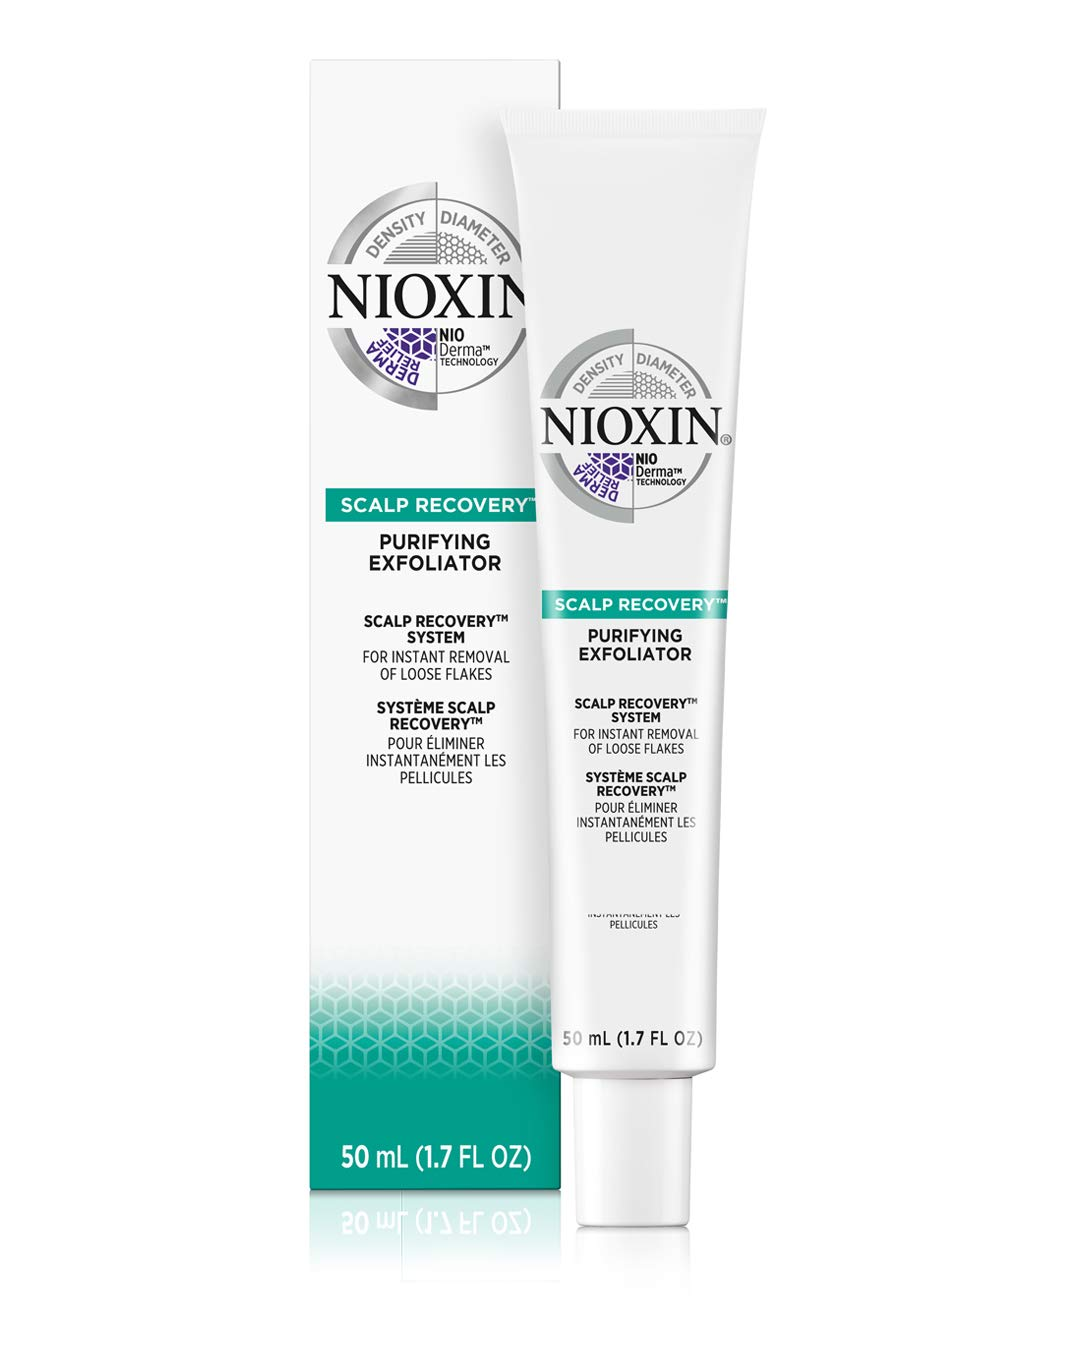 Nioxin Purifying Exfoliator Scalp Recovery Treatment